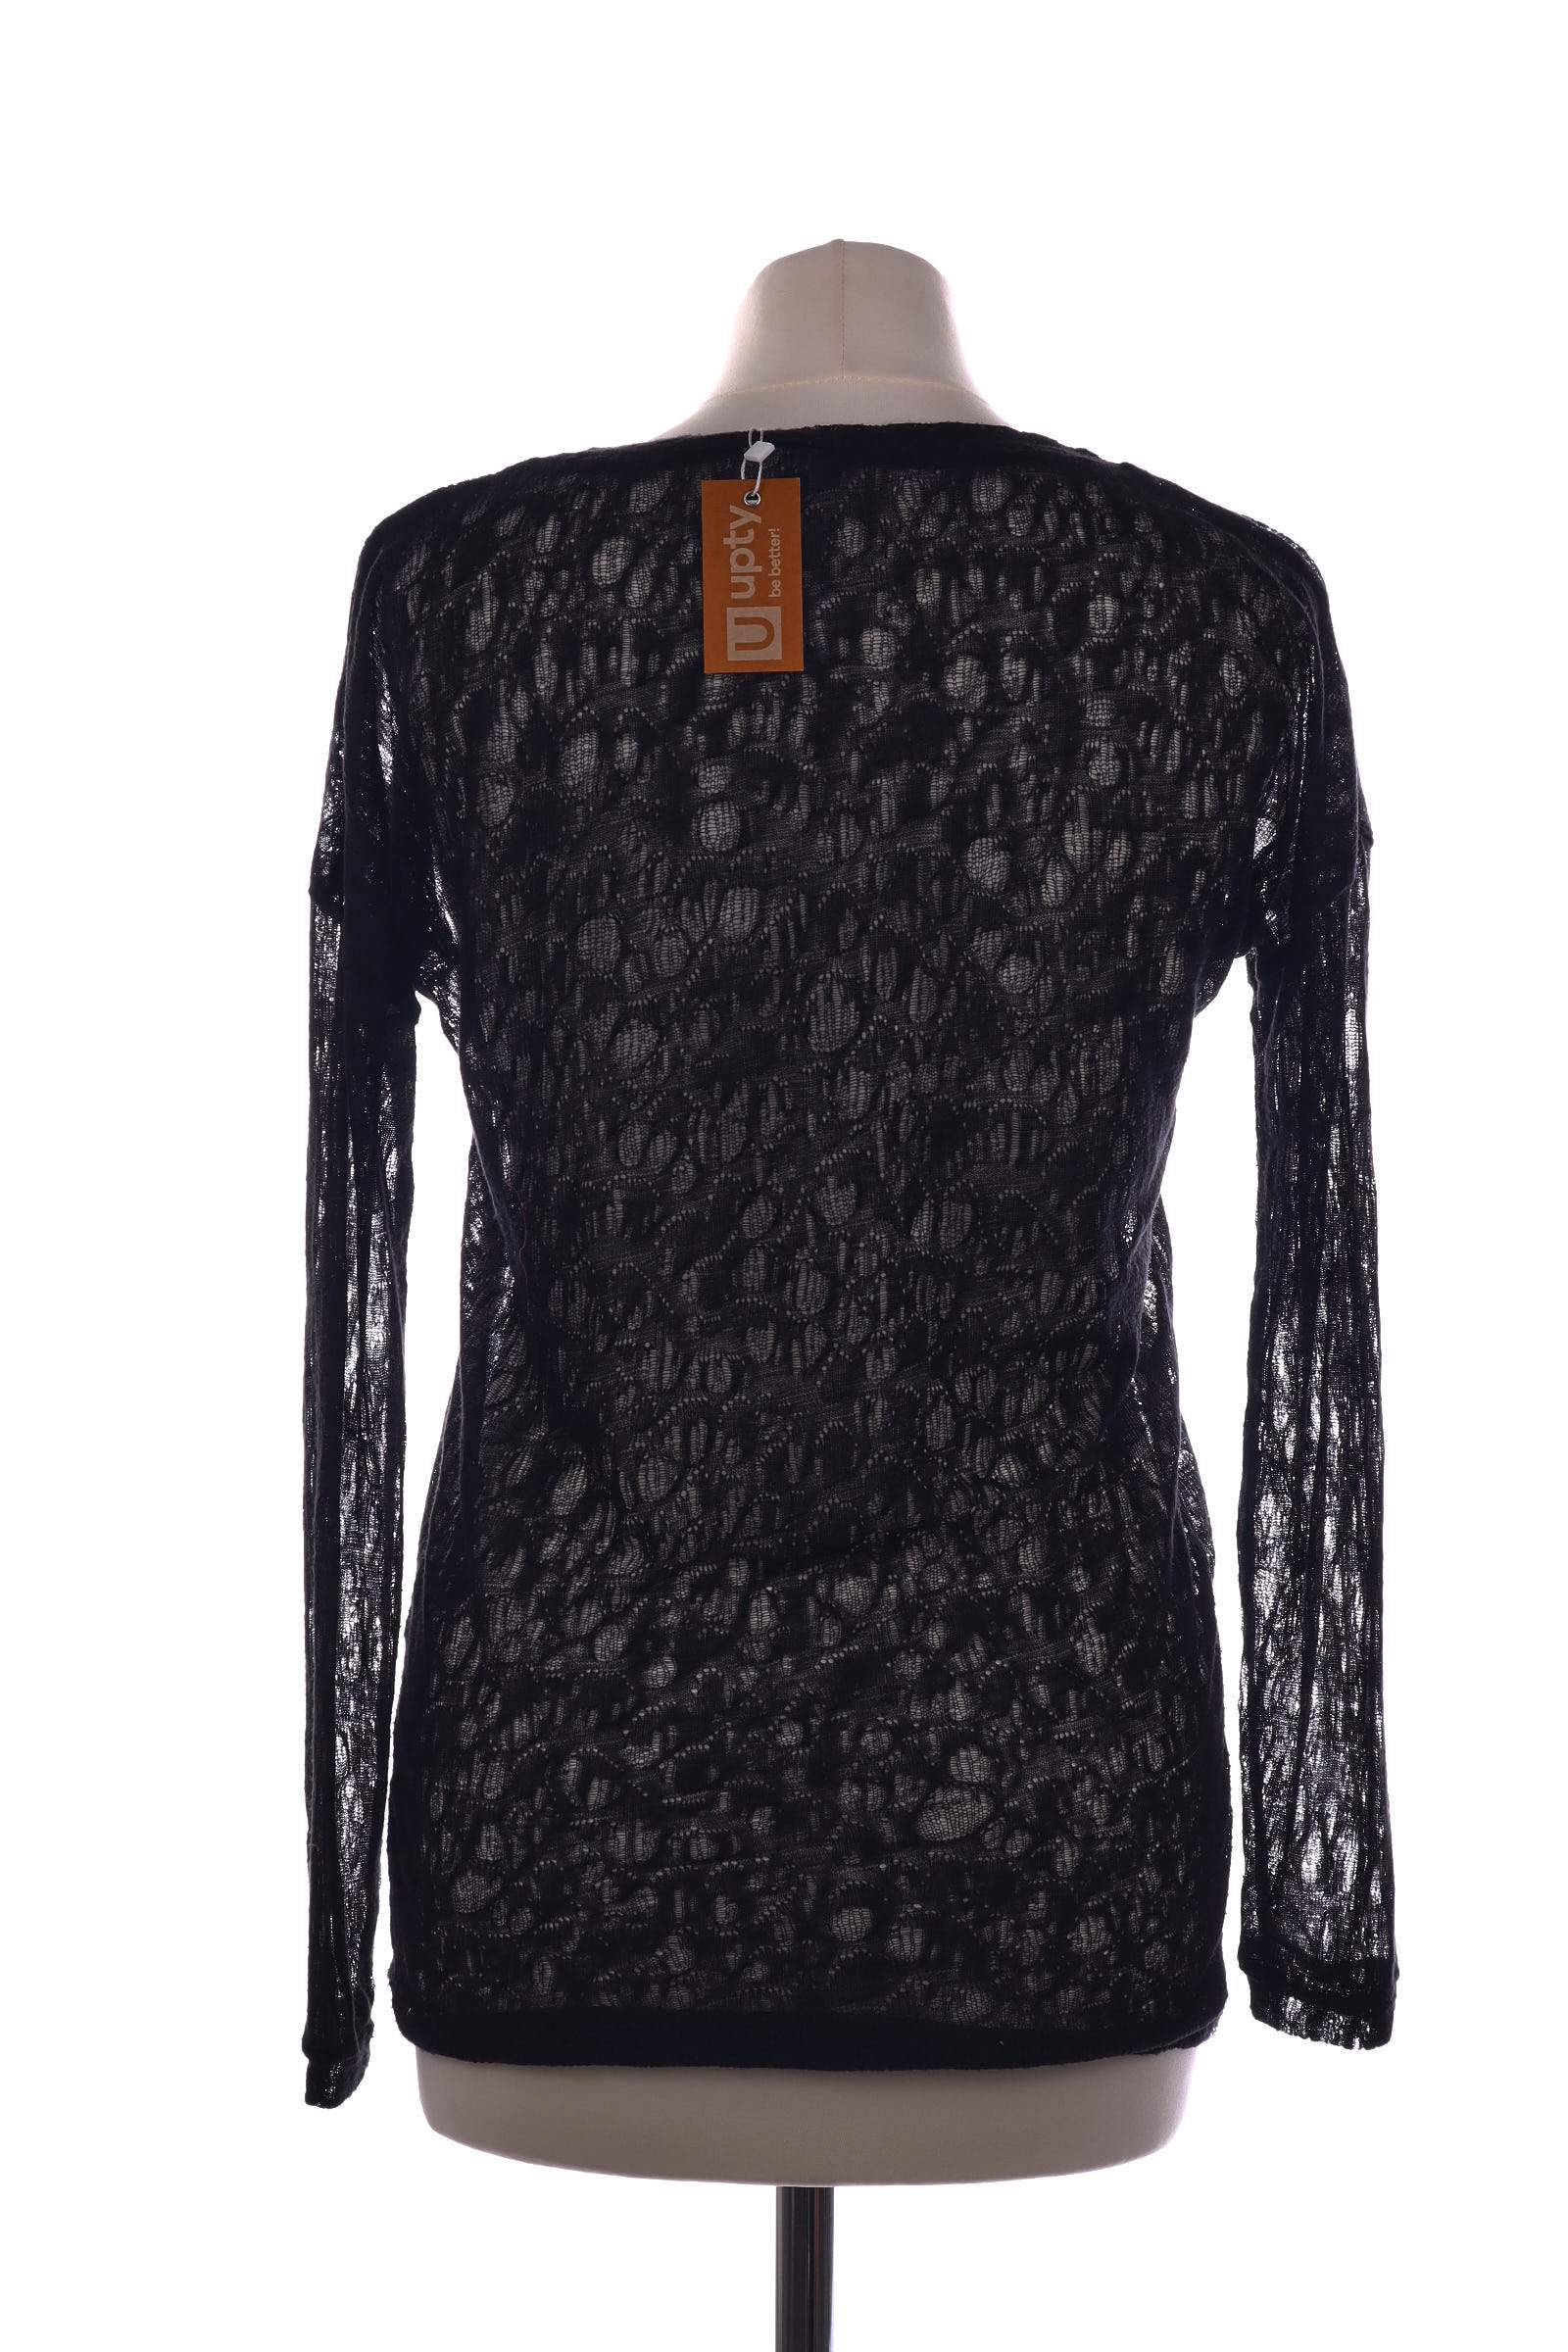 Vero Moda Black Top